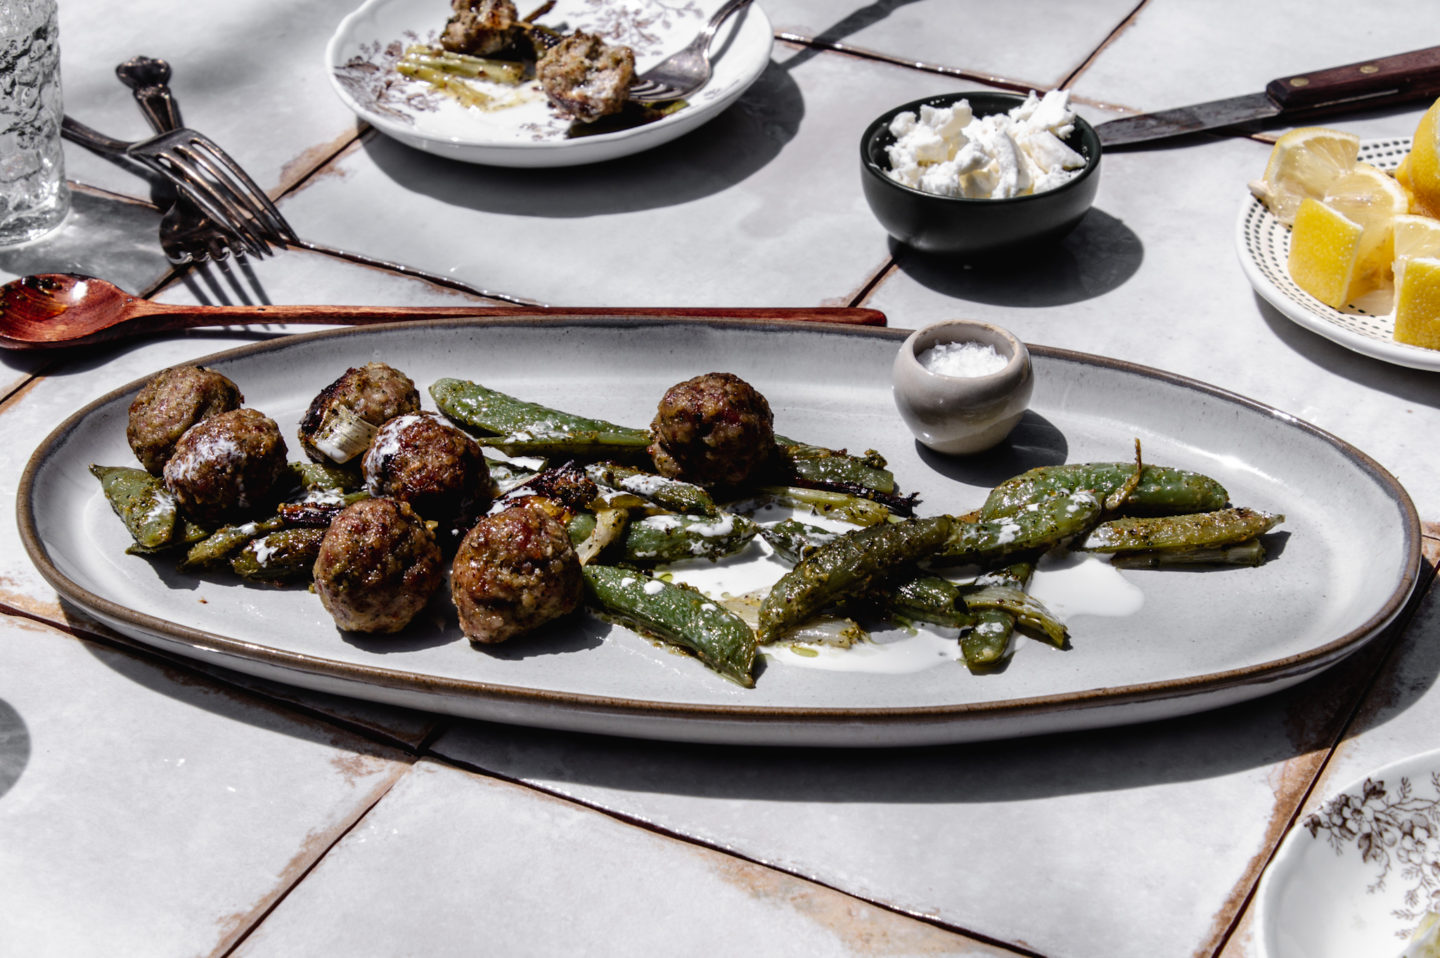 Delicious baked pesto pork meatballs. A simple sheet pan dinner that's perfect for weeknights.